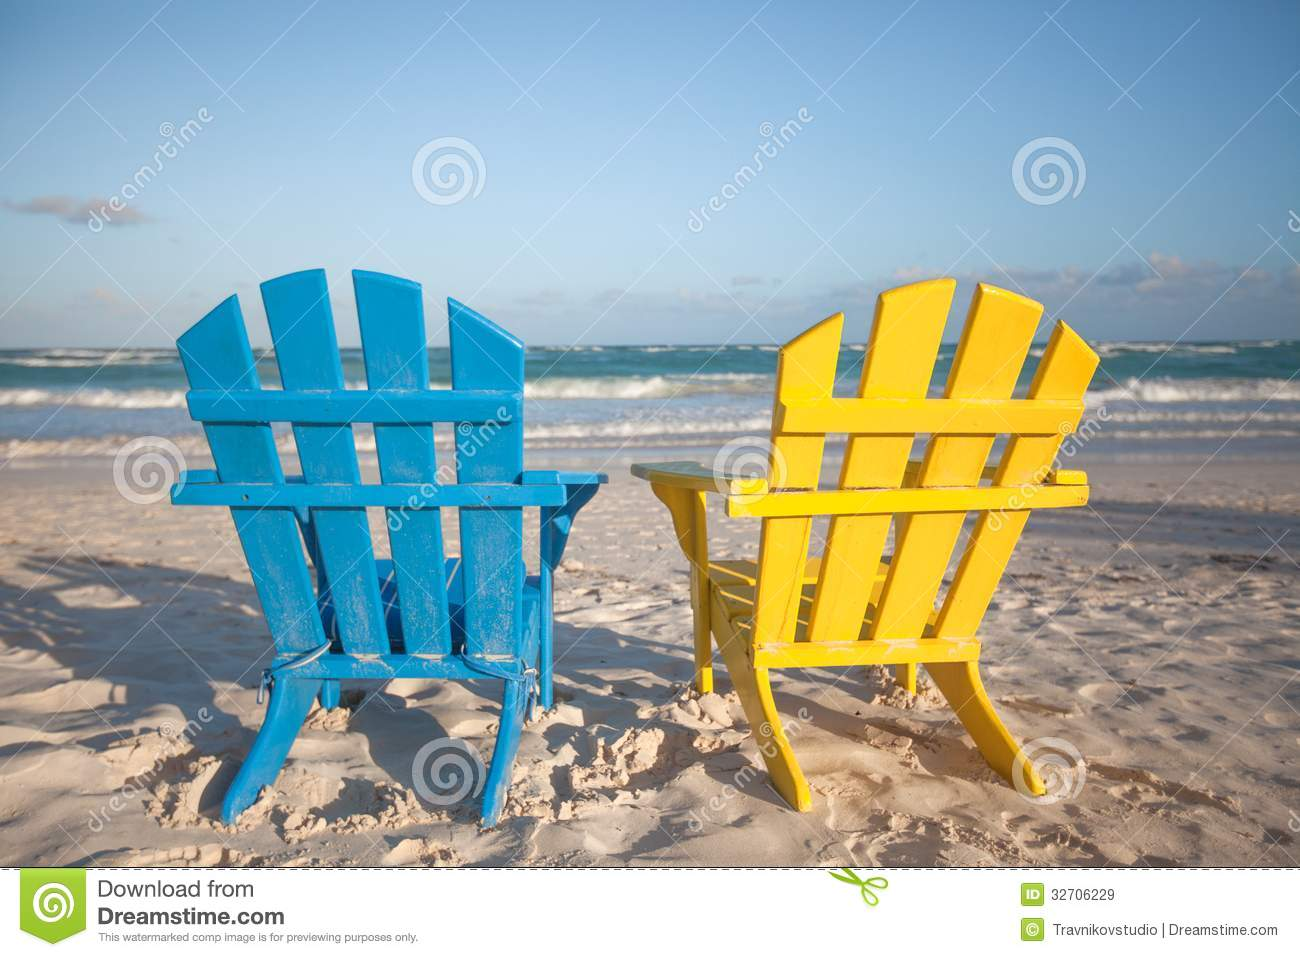 beach wooden chairs for vacations and summer beach wooden chairs for ...